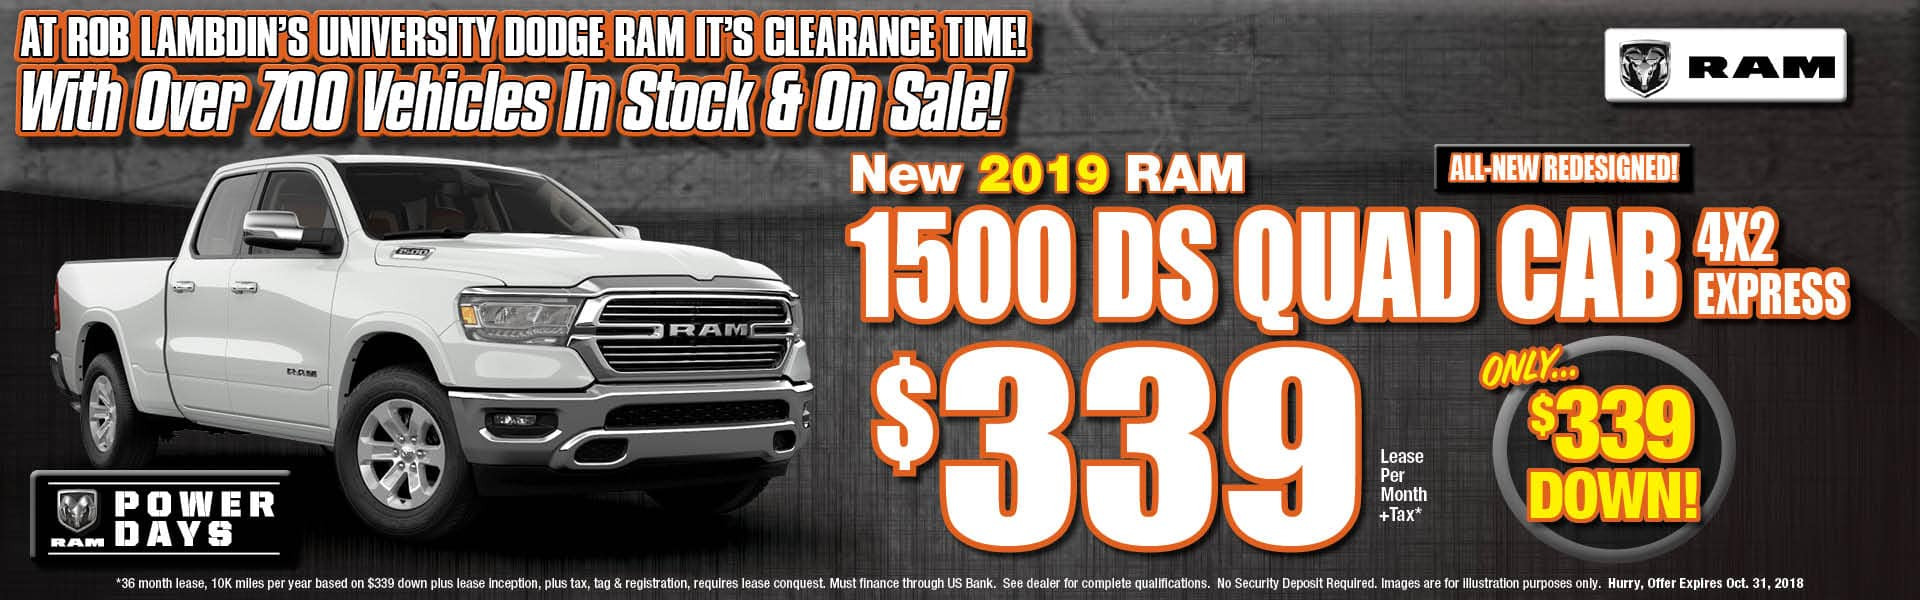 Ram 1500 DS Express Lease $339